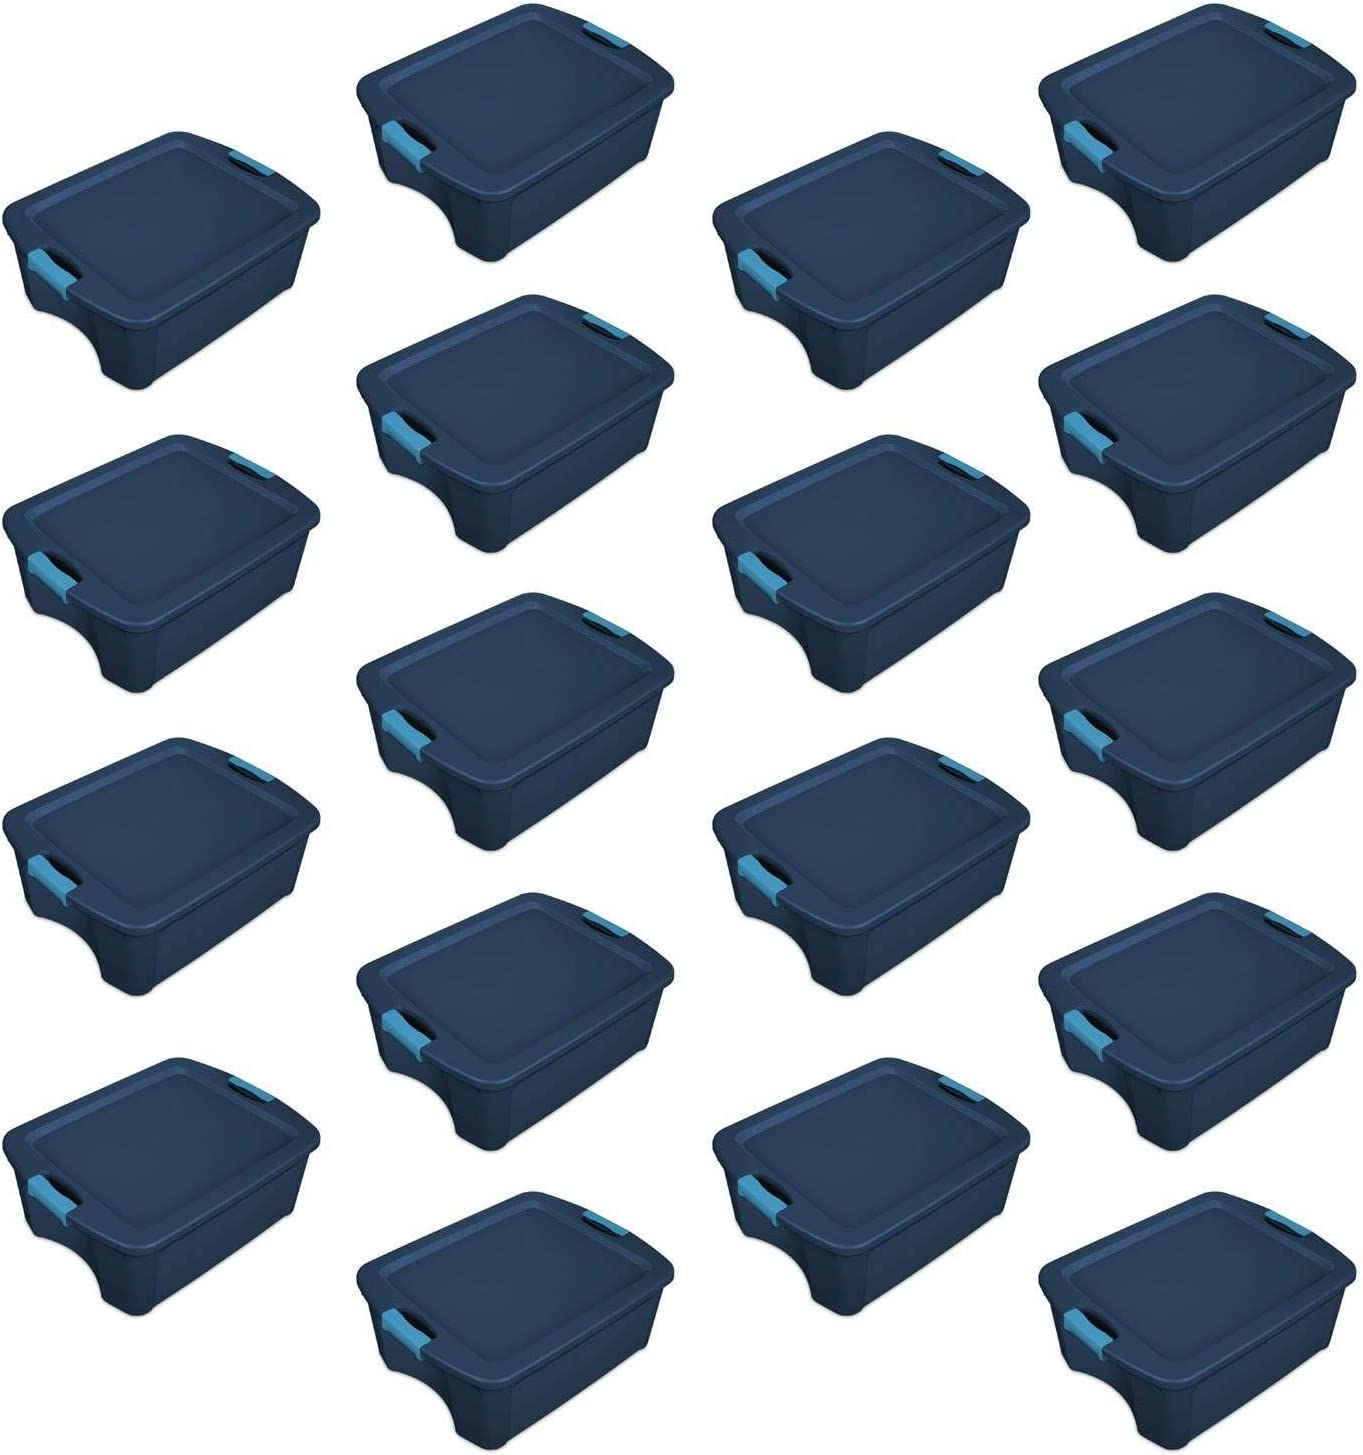 Sterilite 12 Gallon Latch and Carry Max 53% OFF True Factory outlet Blue 14 Tote Storage